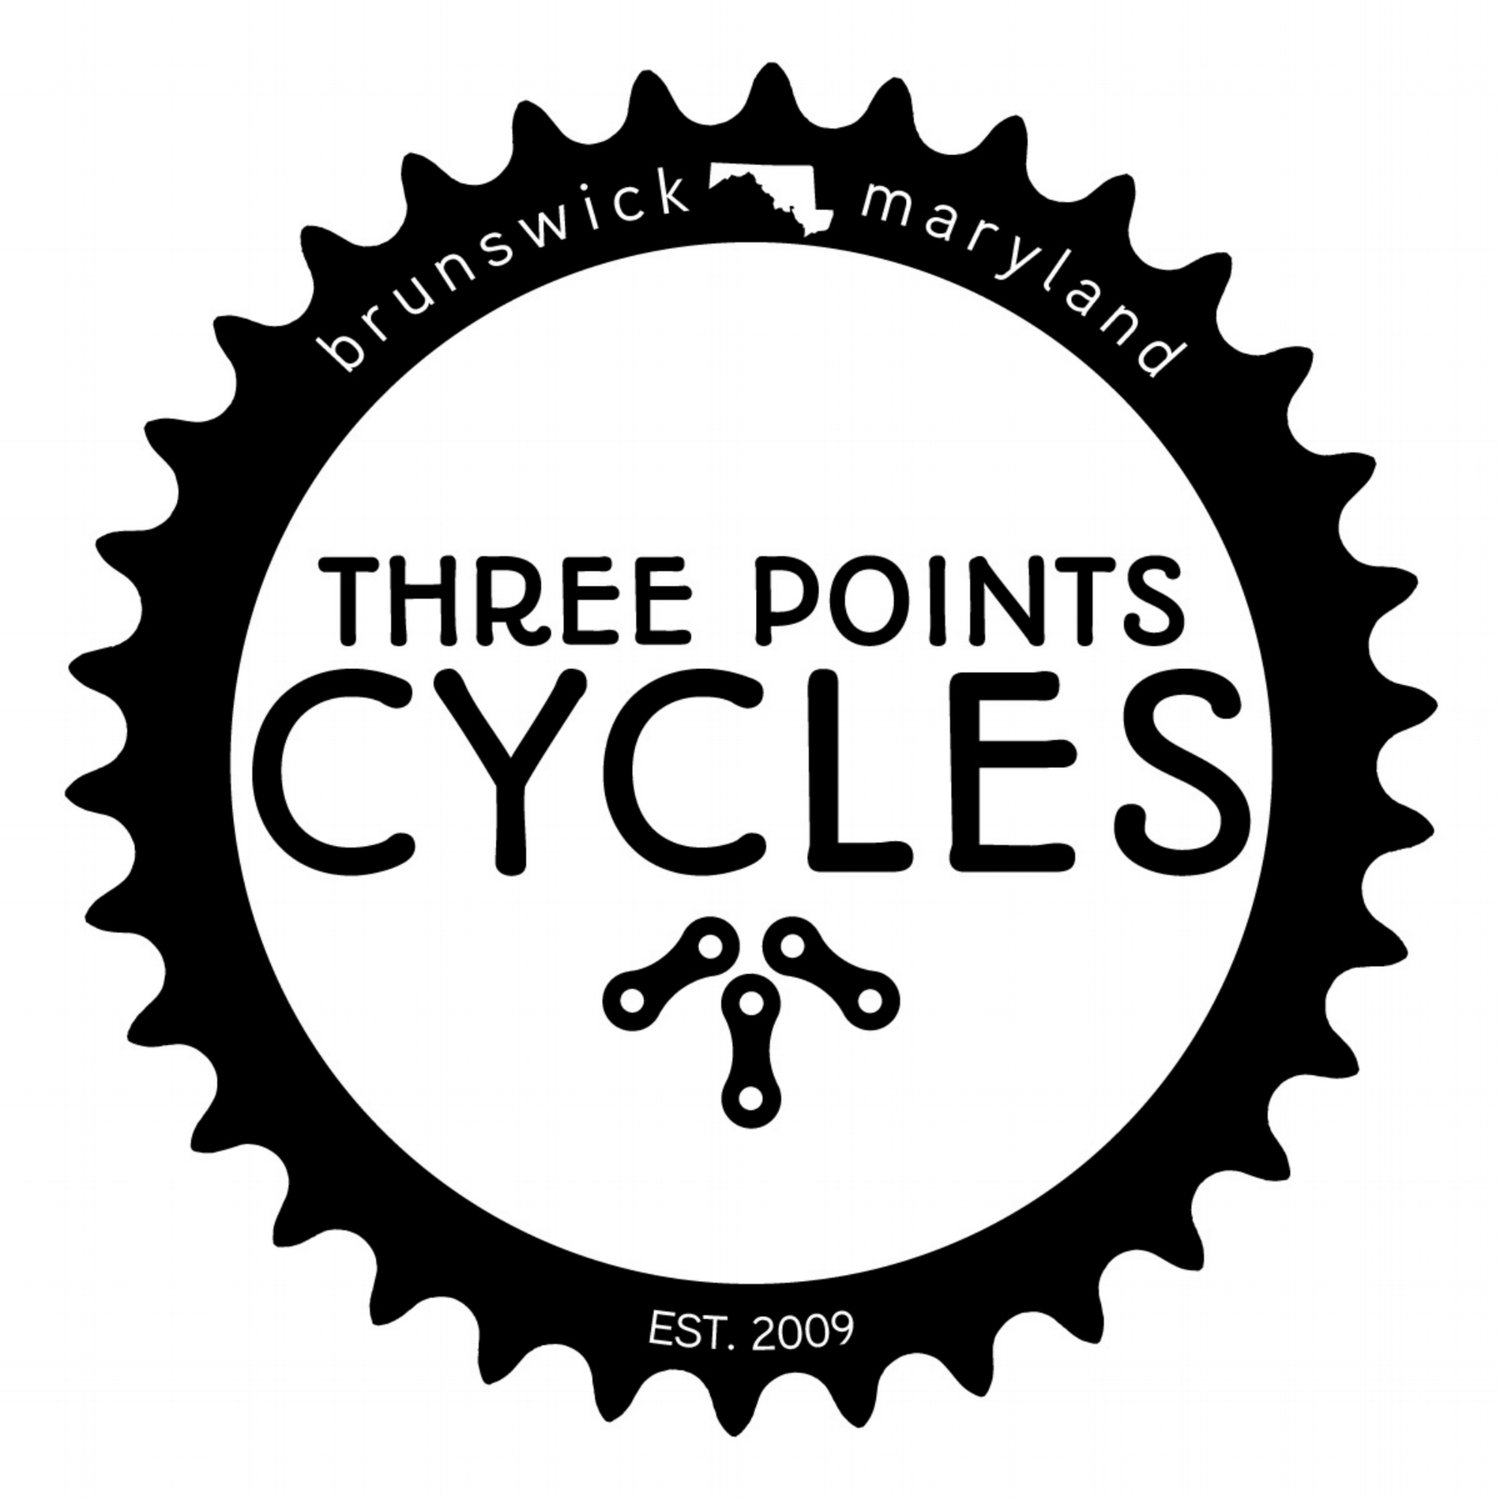 Three Points Cycles